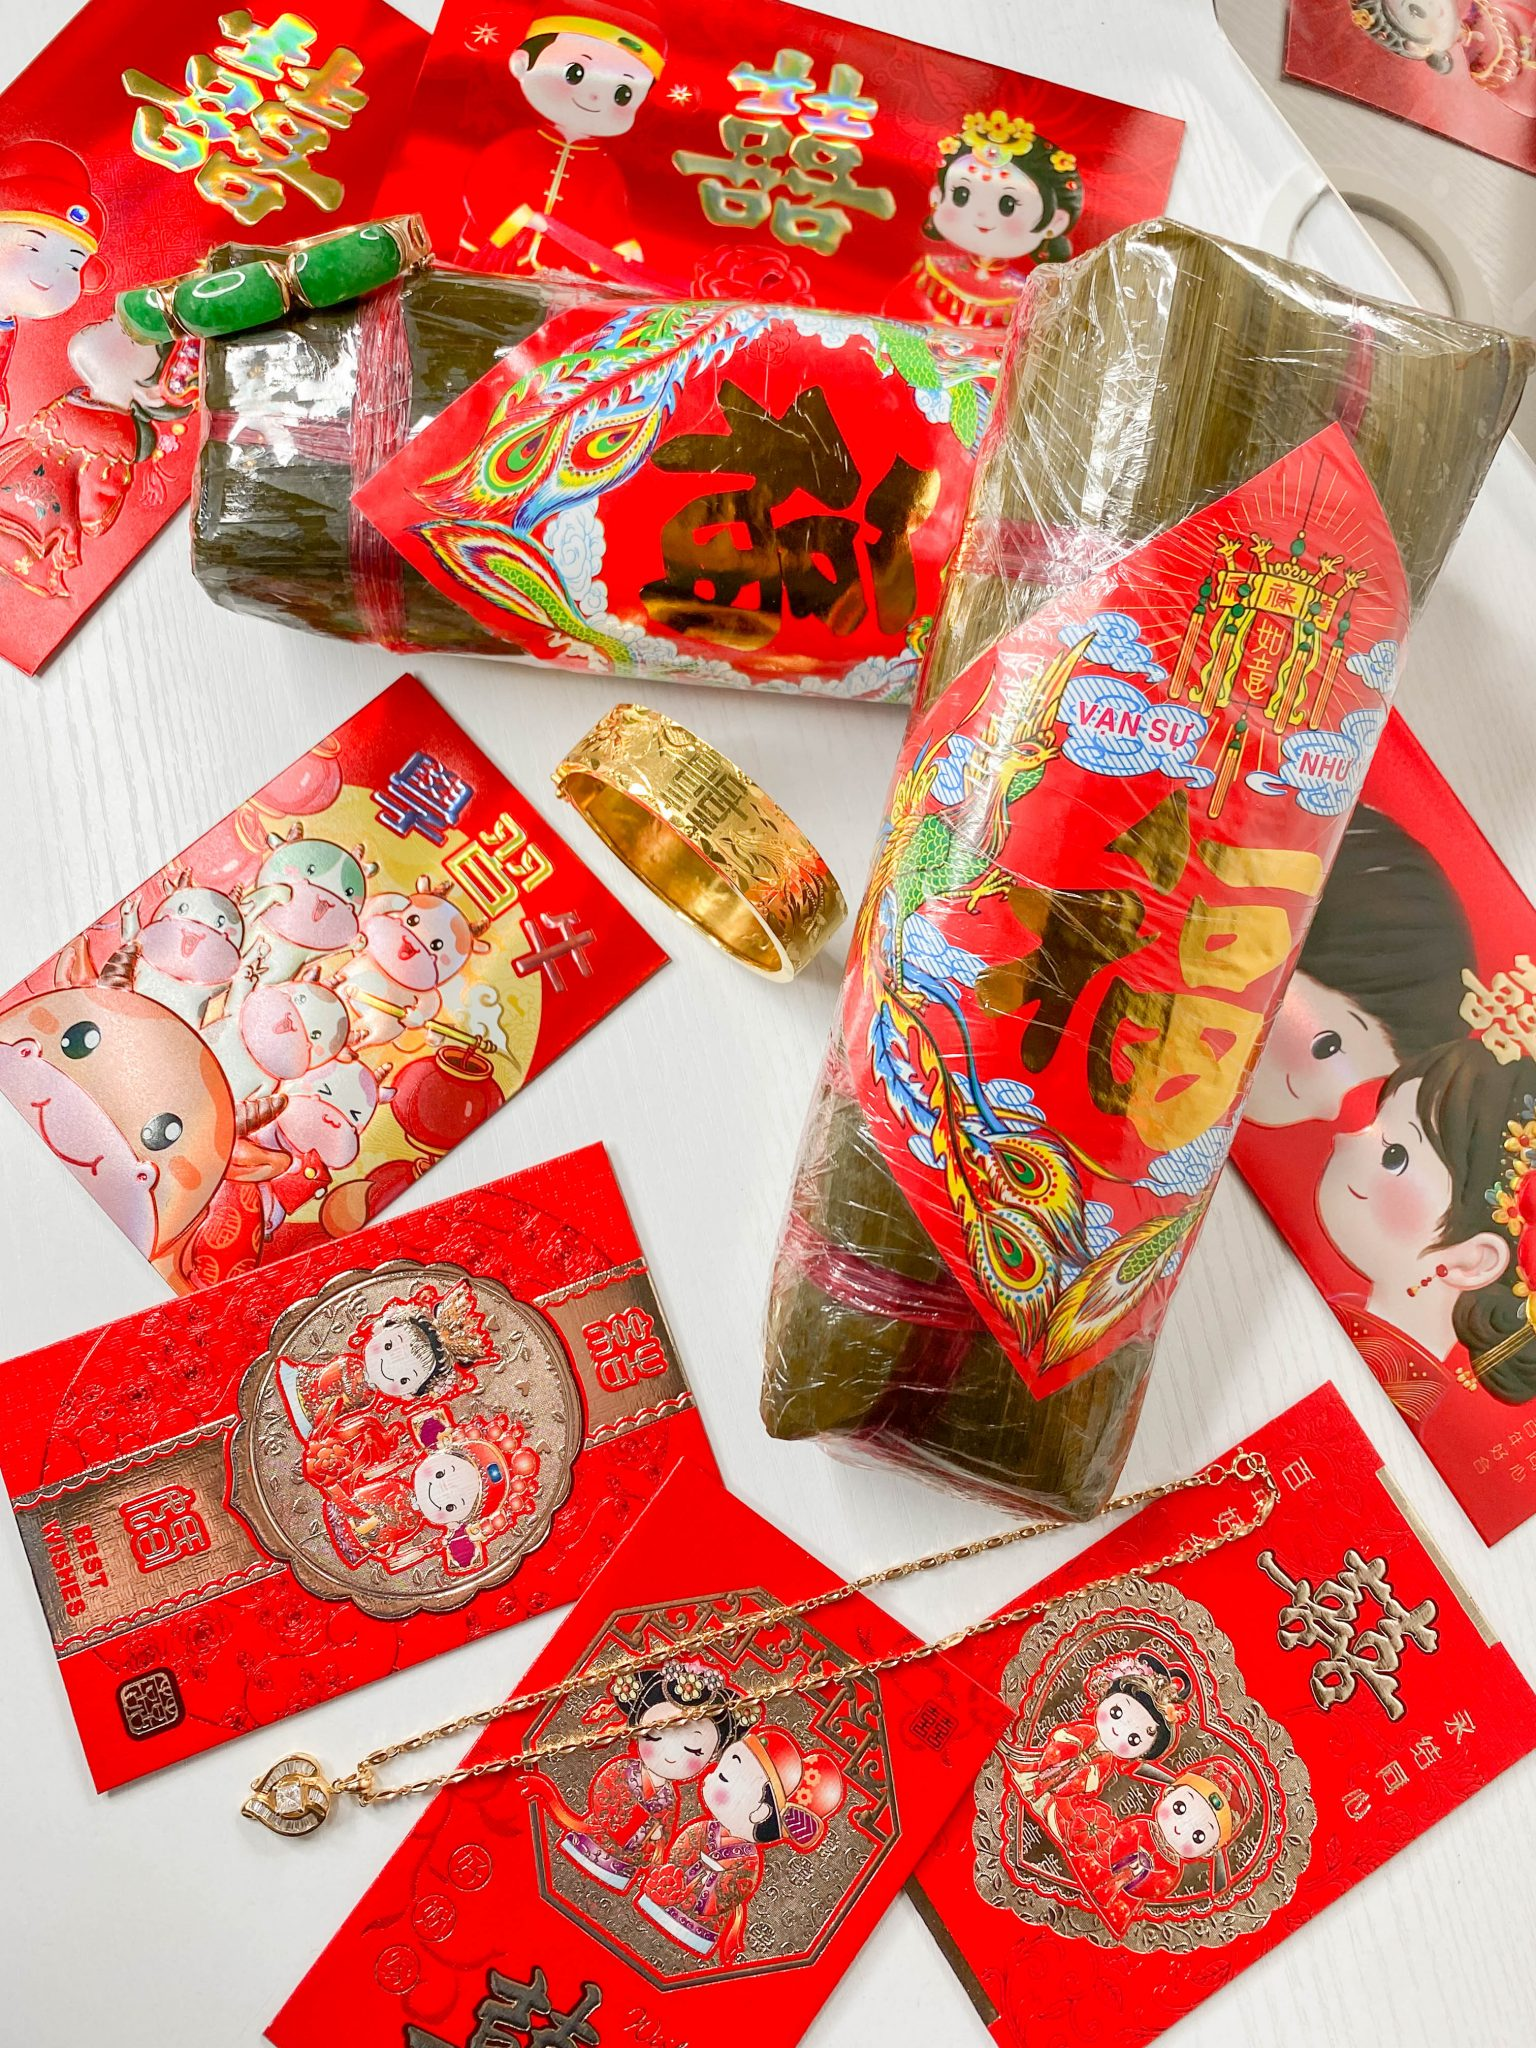 Happy Lunar New Year - Year of the Ox by Basically A Mess (photo of Lunar New Year red envelopes and banh tet)